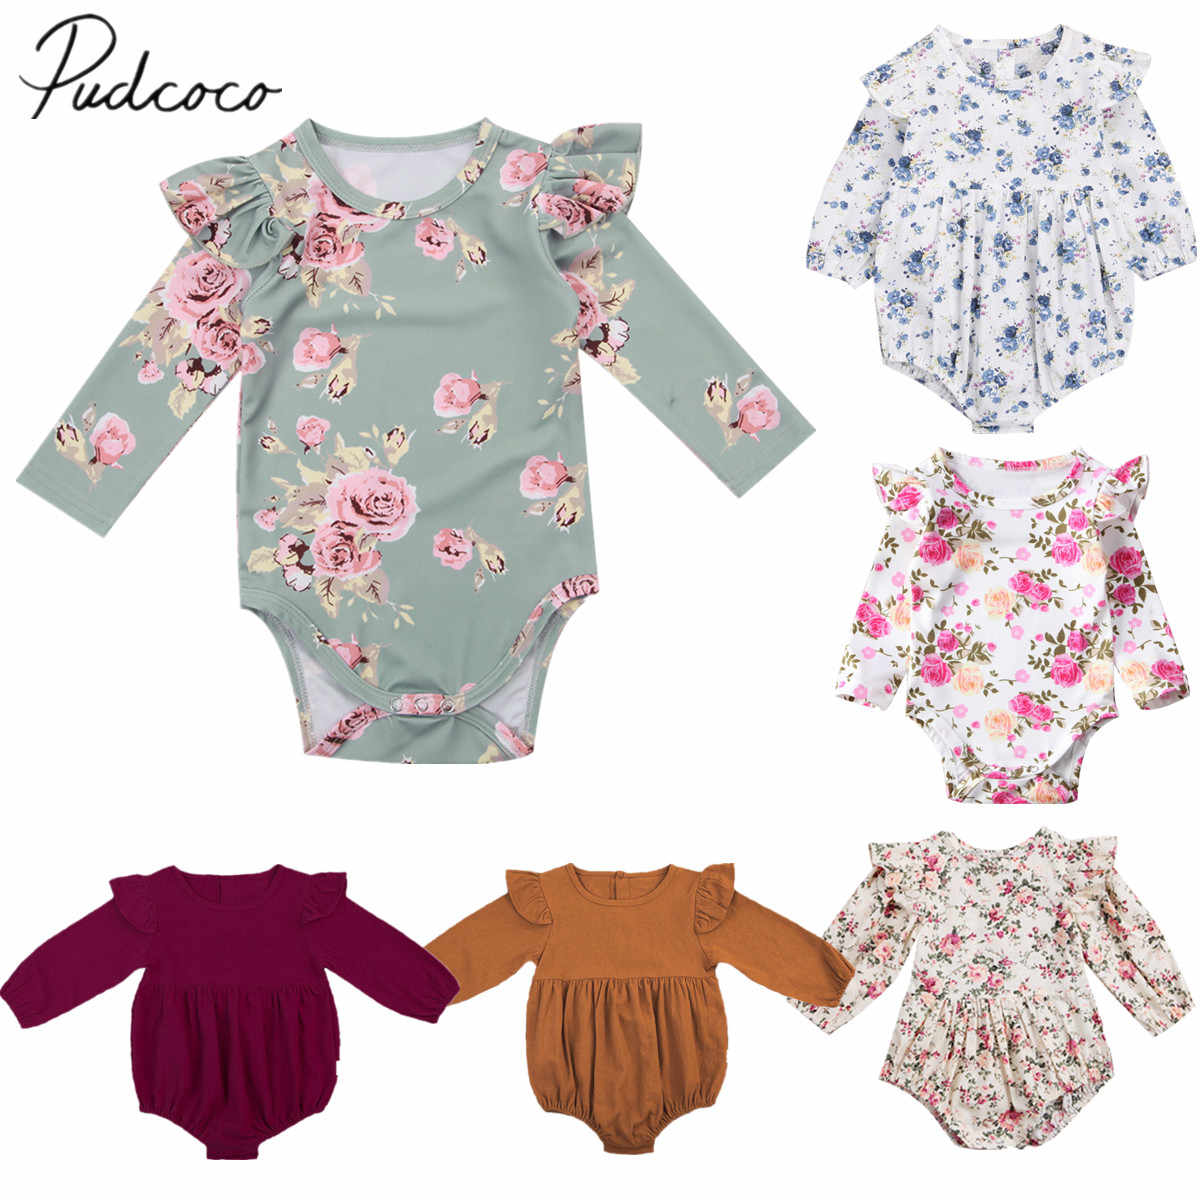 2018 Brand New Toddler Infant Newborn Baby Girls Kids Long Butterfly Sleeve Romper Outfits Playsuit Jumpsuit Floral Clothes 0-3Y